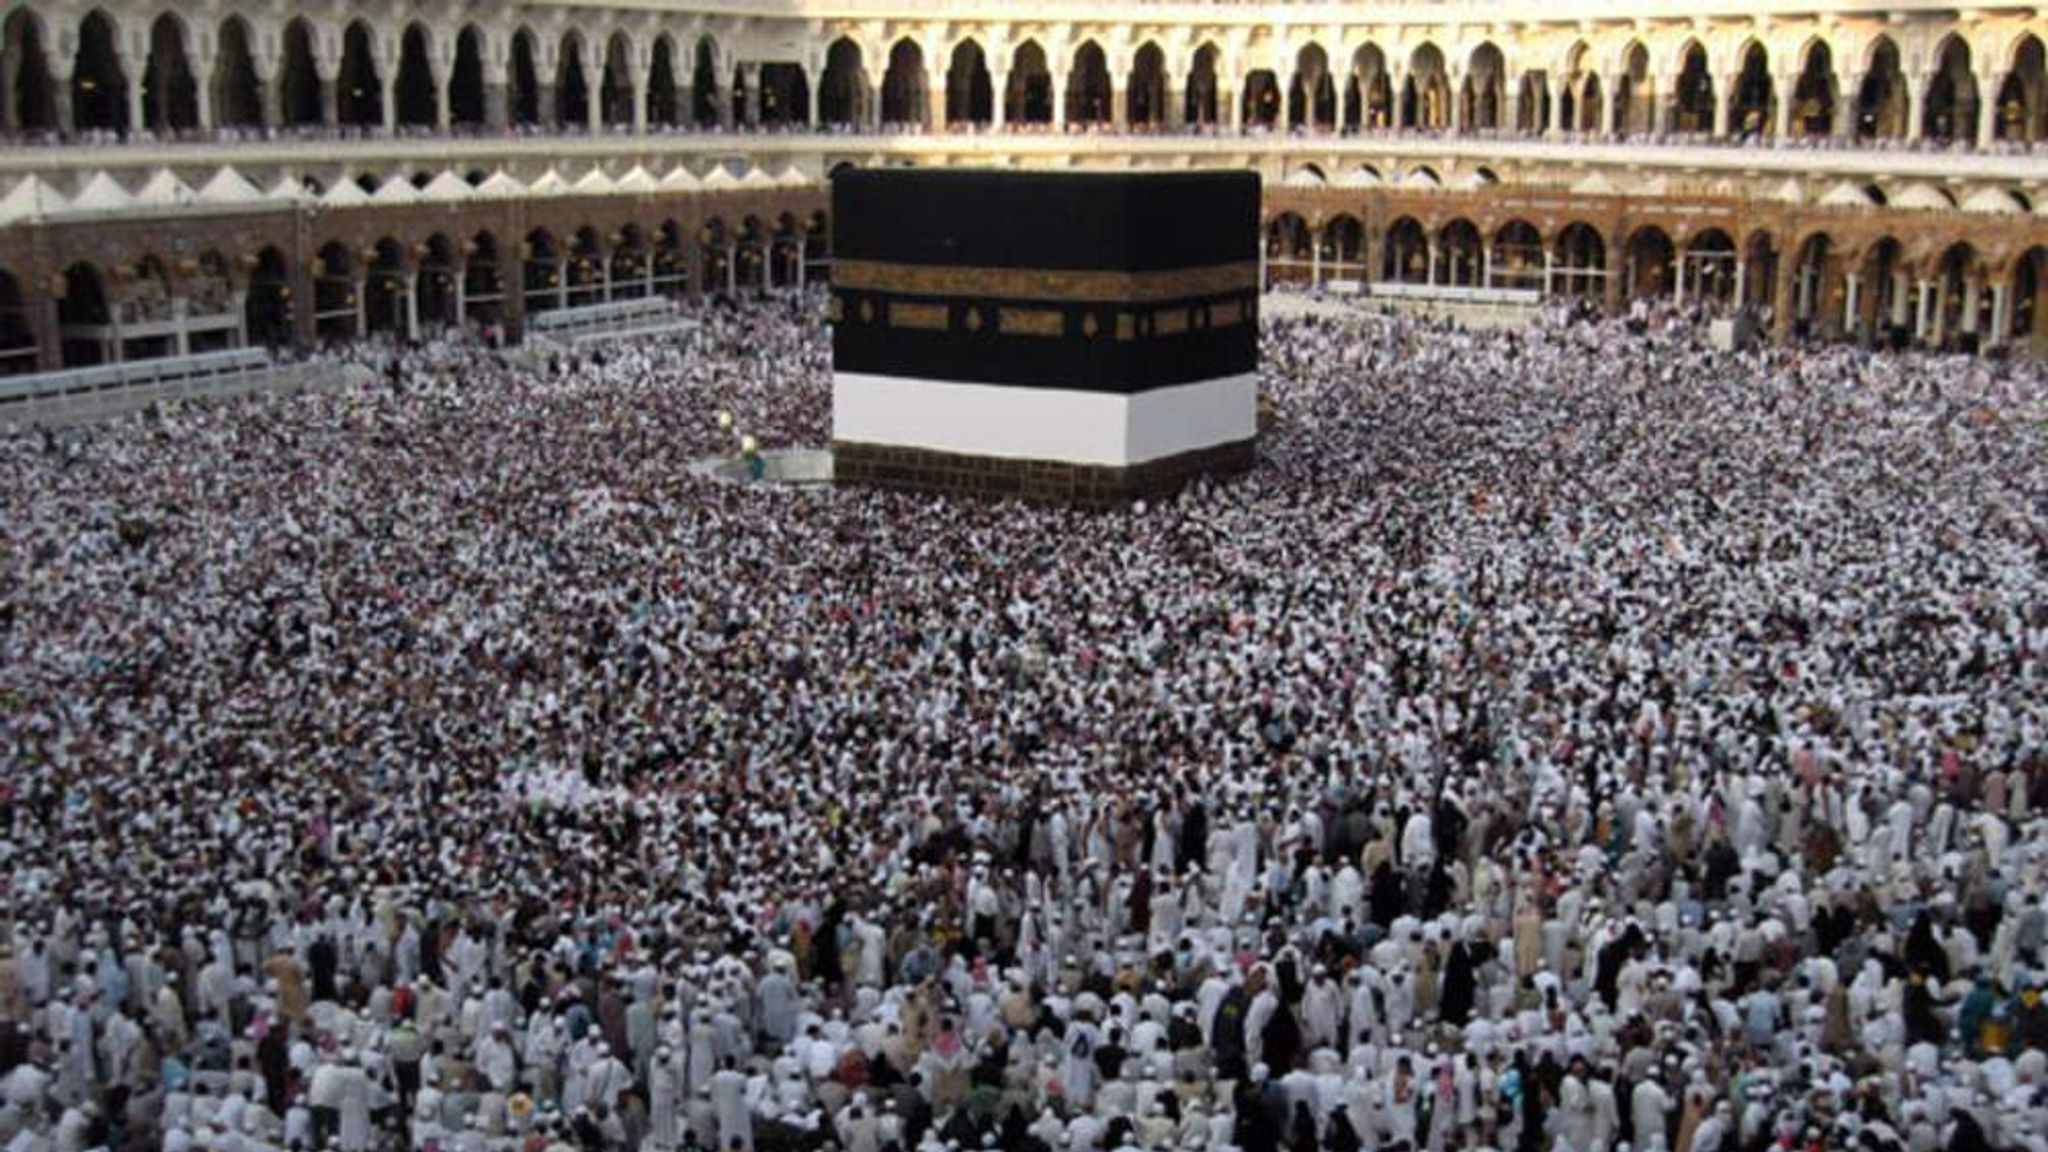 the spiritual experience of the hajj an annual worldwide pilgrimage to the kaba These are the environmental remnants of the world's largest annual pilgrimage the antithesis to the once-in-a-lifetime spiritual experience that is hajj.